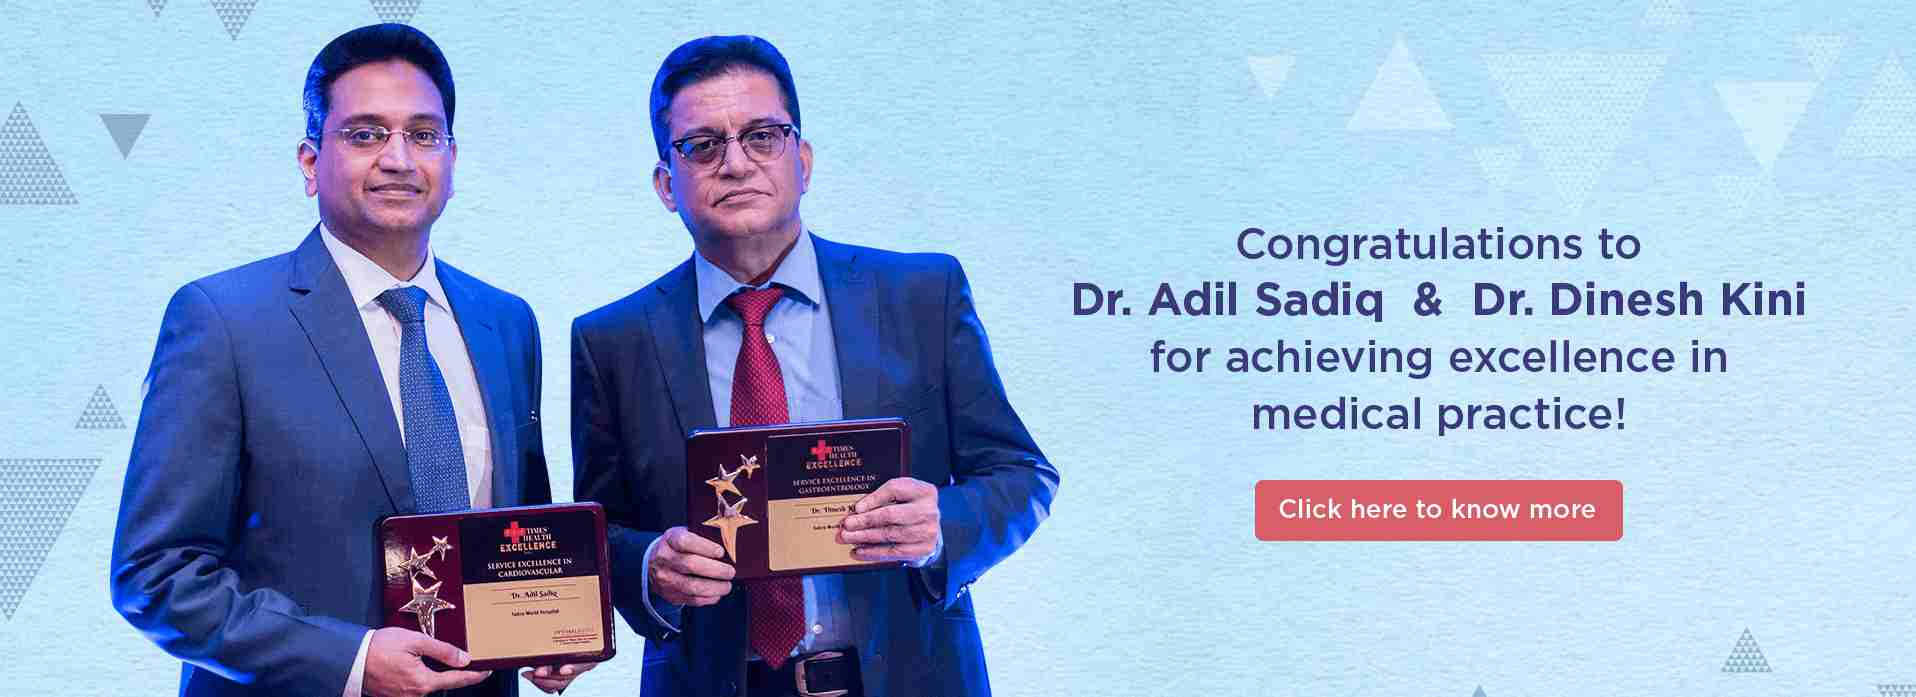 Congratulations to Dr. Adil Sadiq  &  Dr. Dinesh  Kini for achieving excellence in medical practice